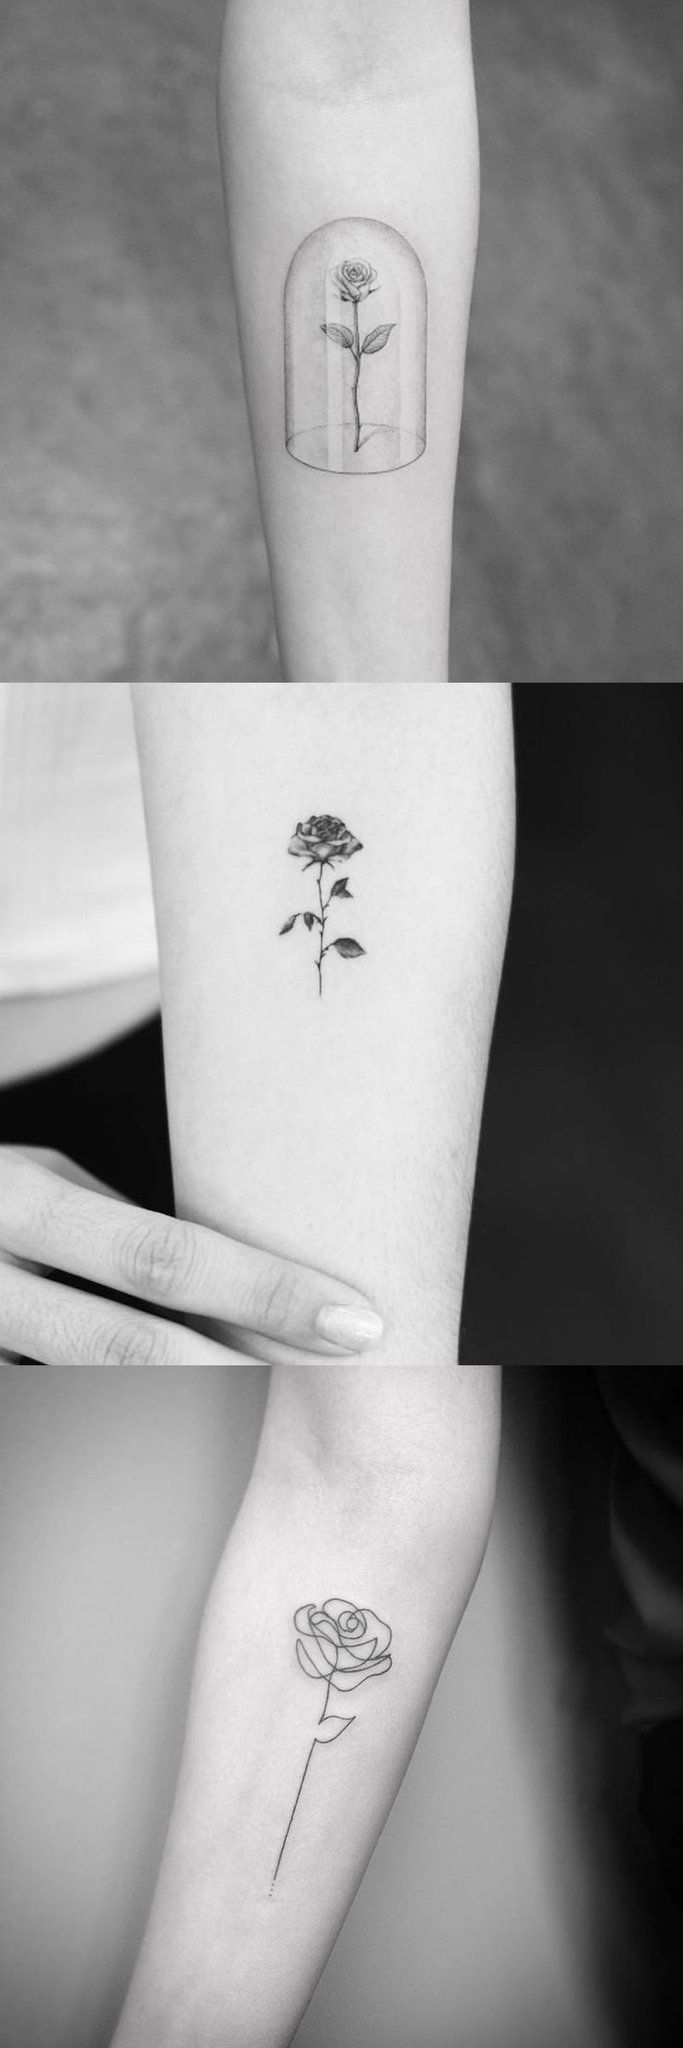 Small wrist tattoos design ideas to make you jealous ecstasycoffee - 30 Free And Simple Small Tattoo Ideas For The Minimalist